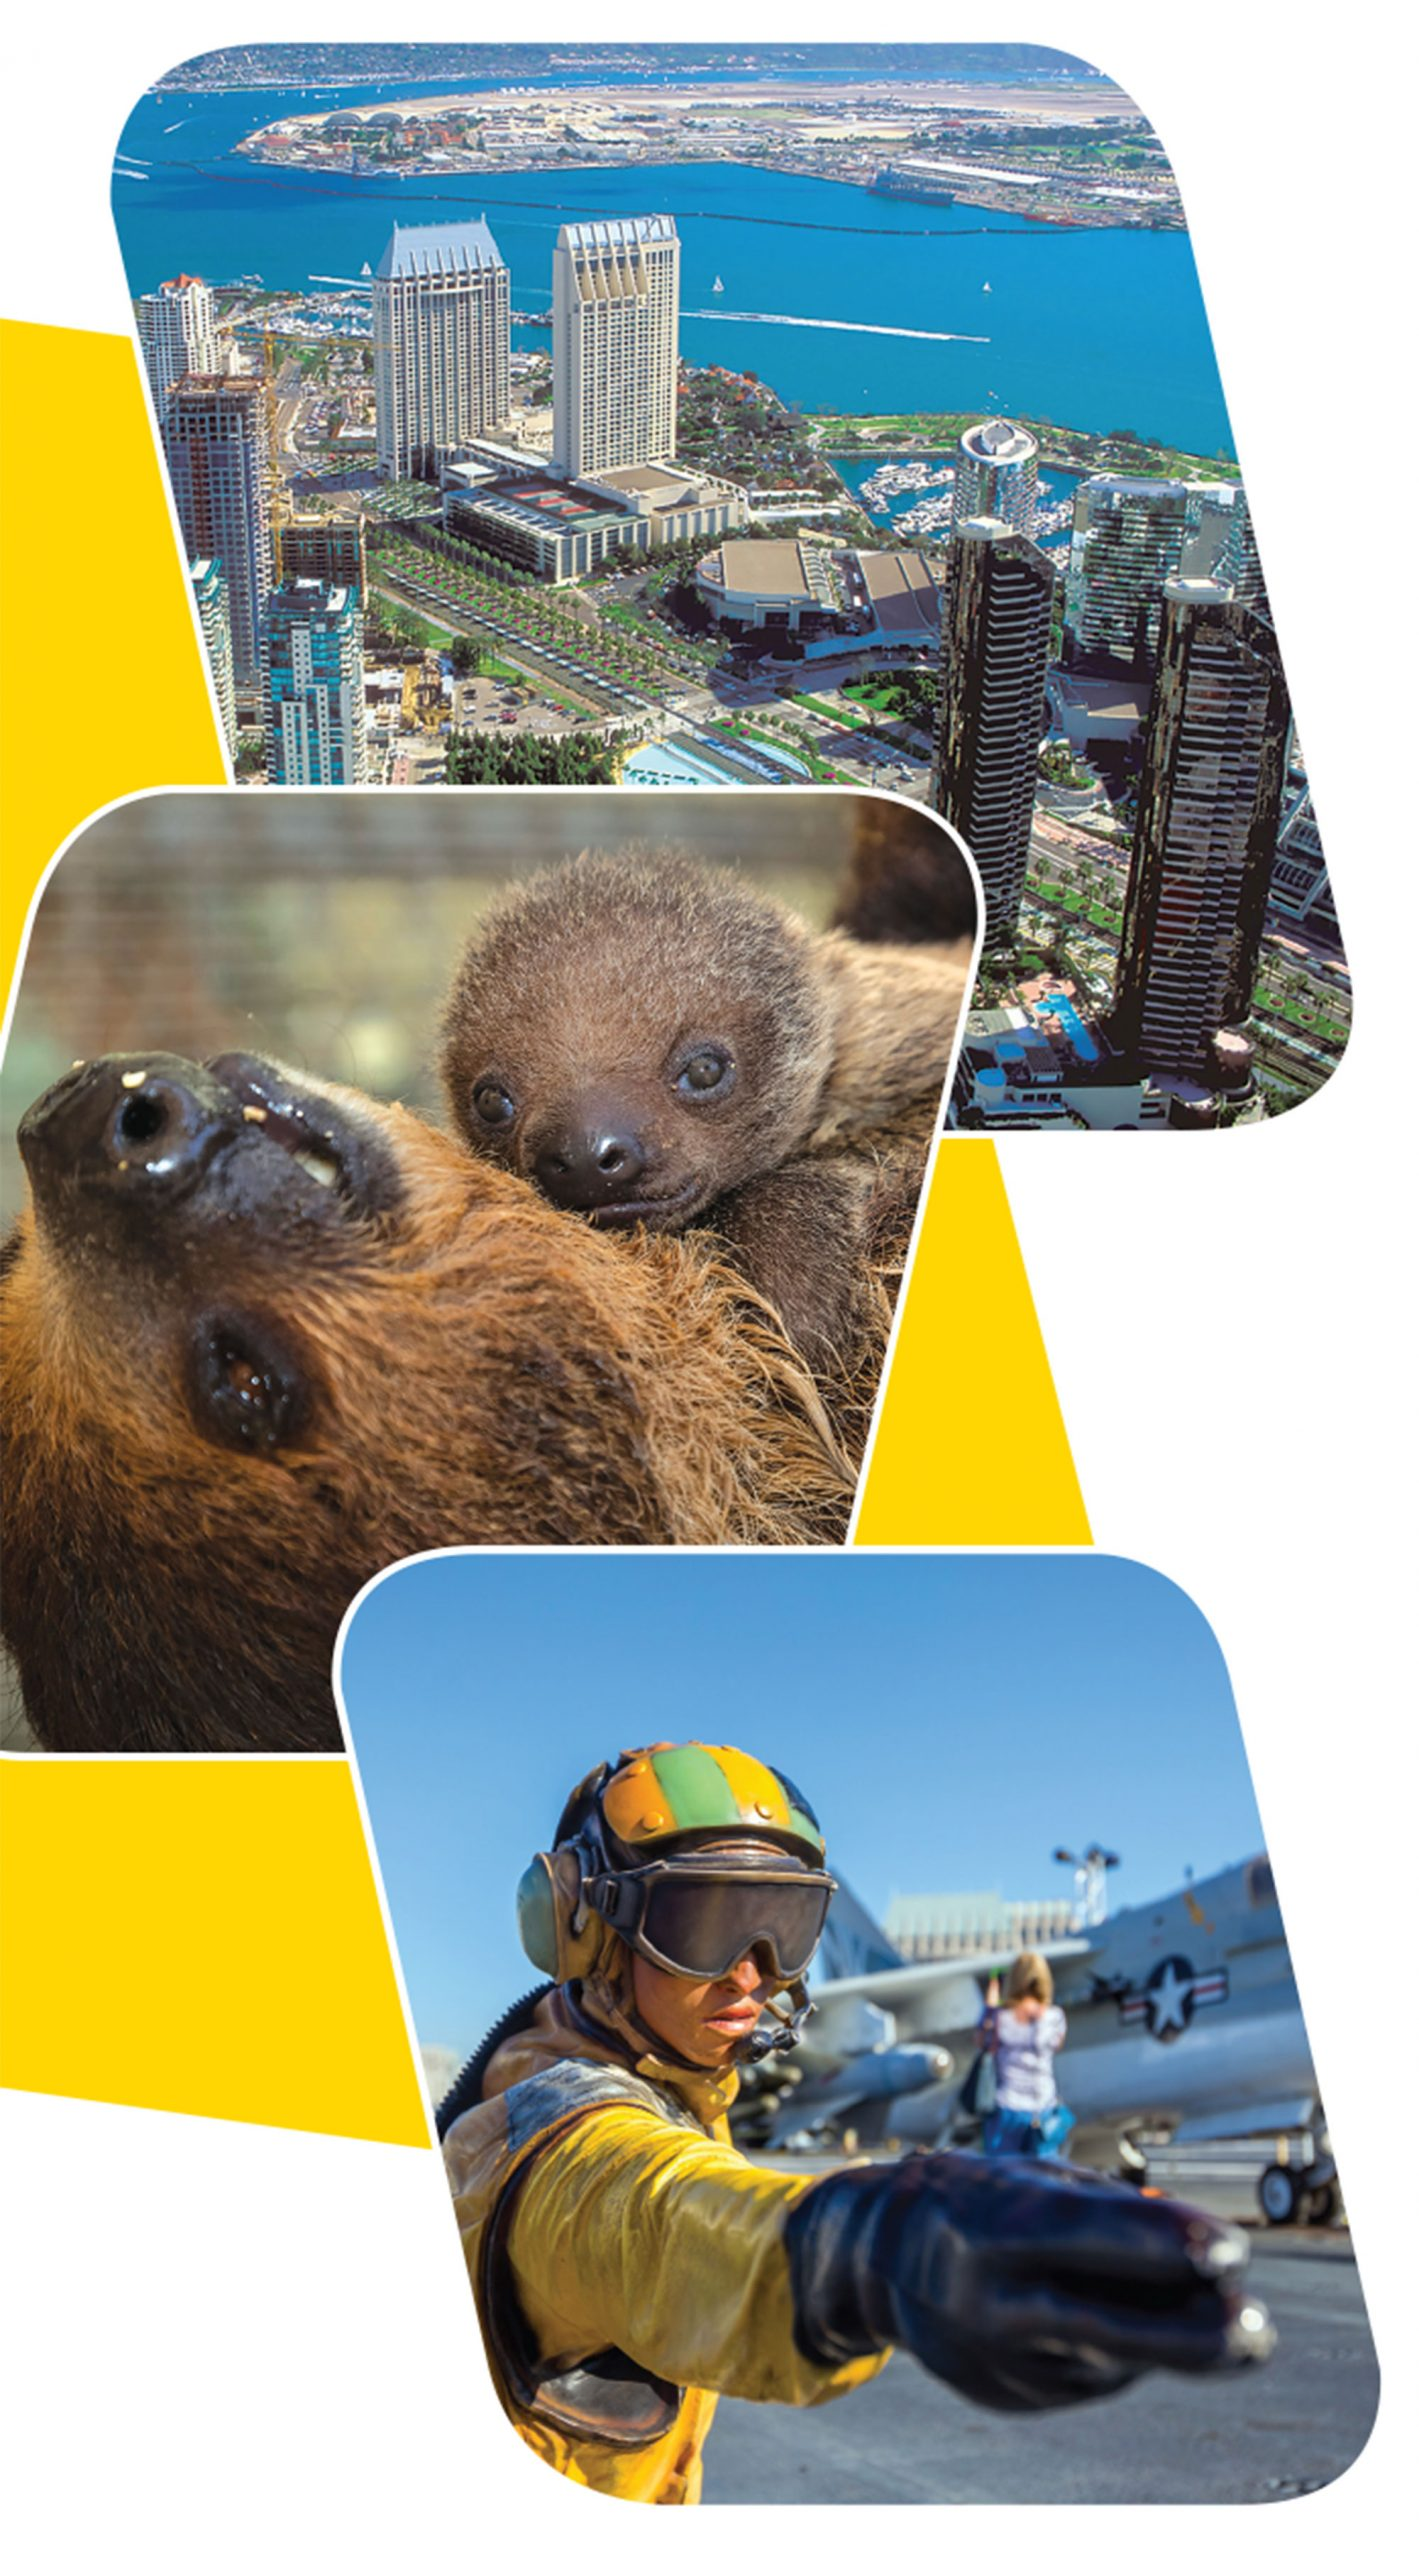 Top to bottom: Downtown San Diego and marina; mother and baby sloth at San Diego Zoo; USS Midway